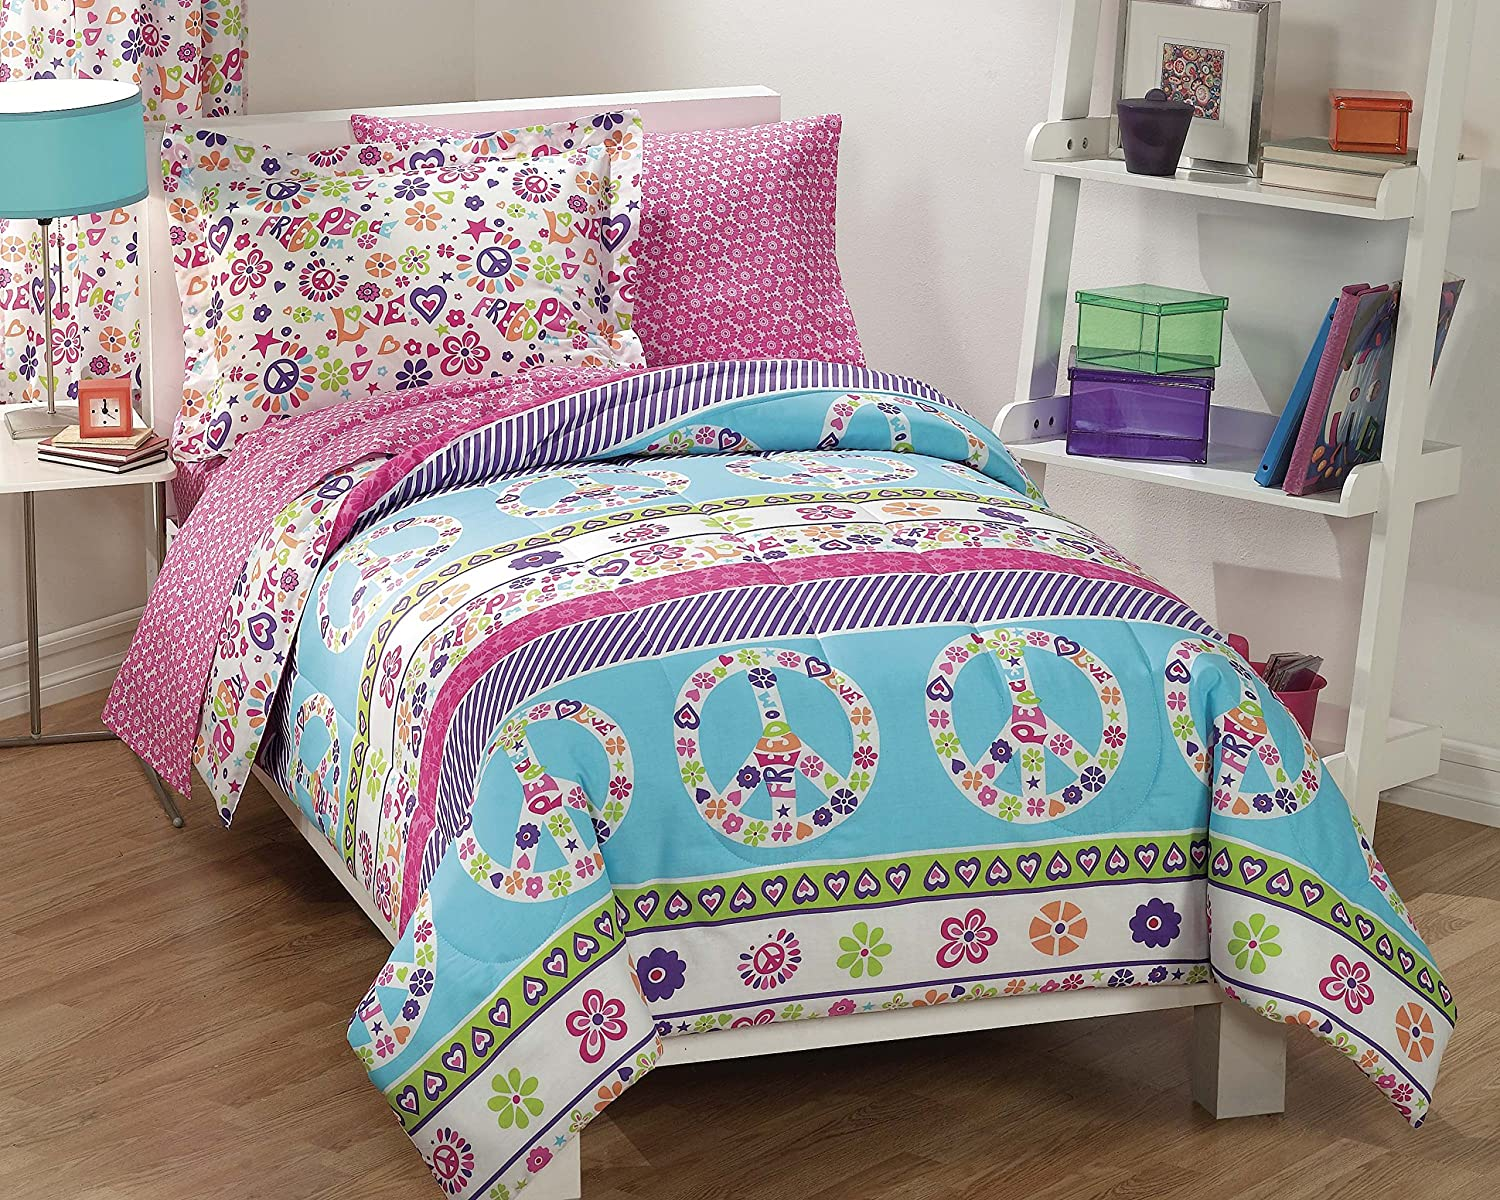 best cheap childrens and teen twin boy or girl bedding set collection ease bedding with style. Black Bedroom Furniture Sets. Home Design Ideas